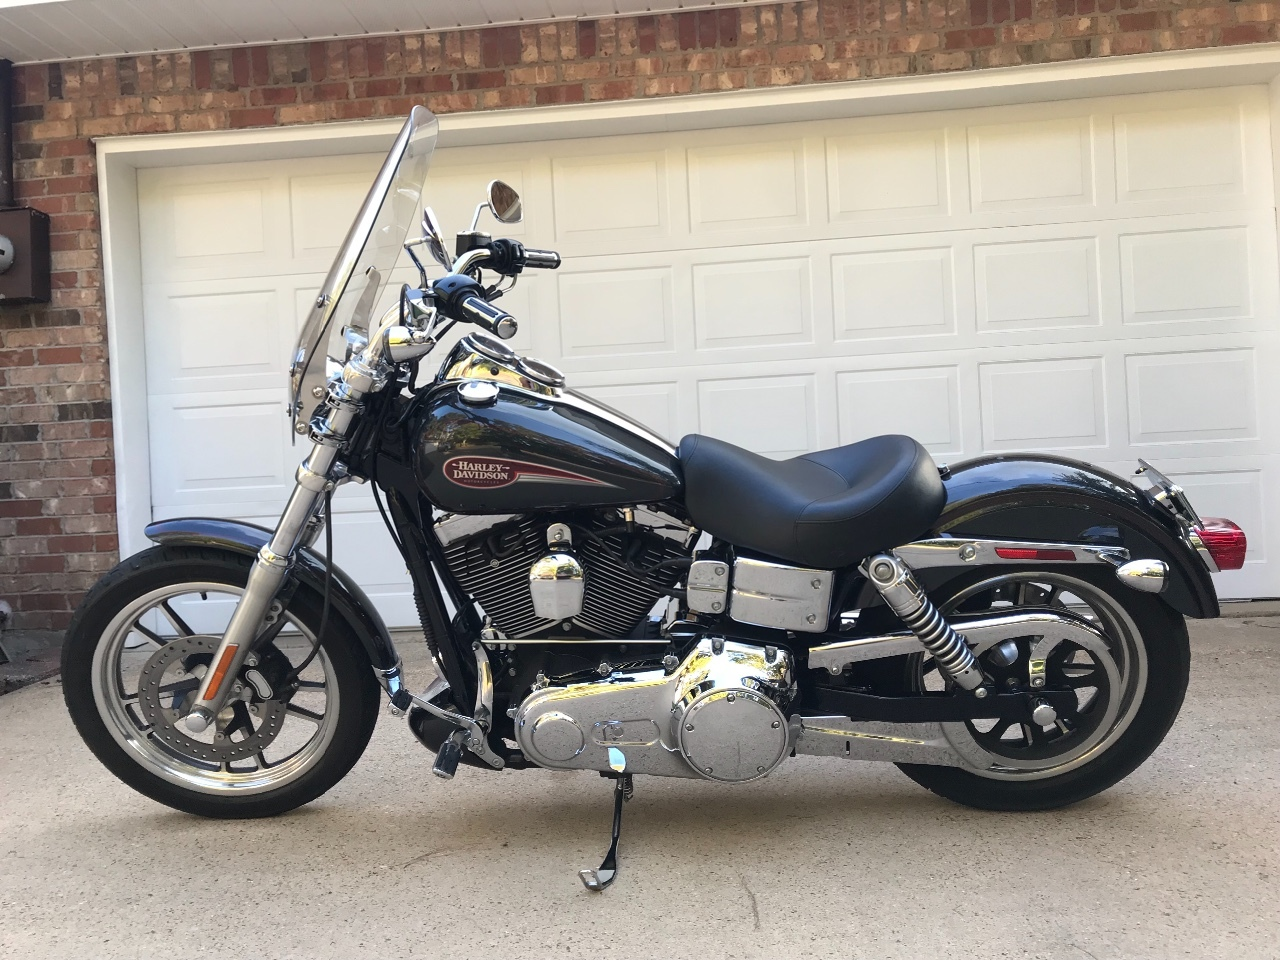 Boyce, LA - Motorcycles For Sale - Cycle Trader